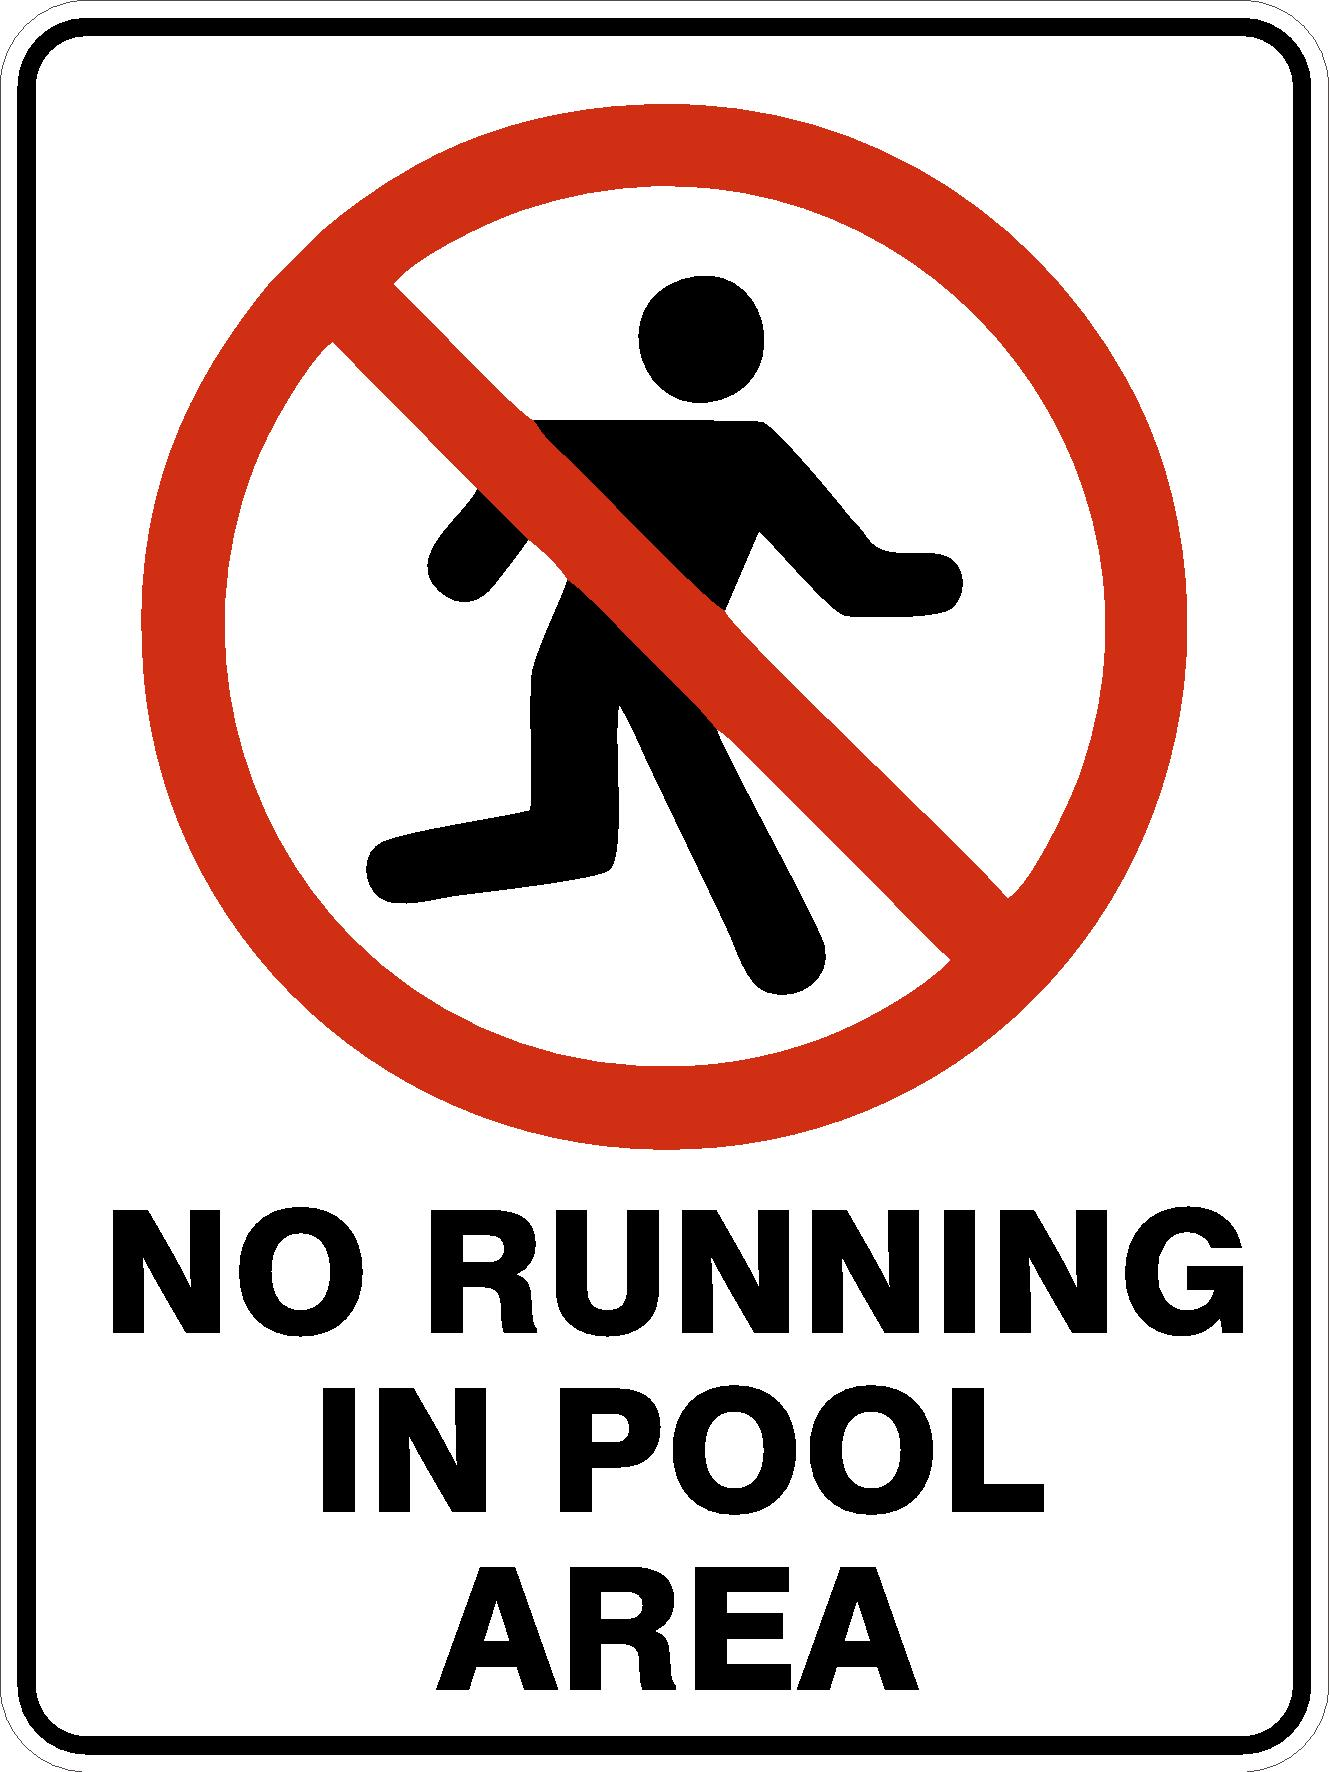 Pool Safety Signs NO RUNNING IN POOL AREA